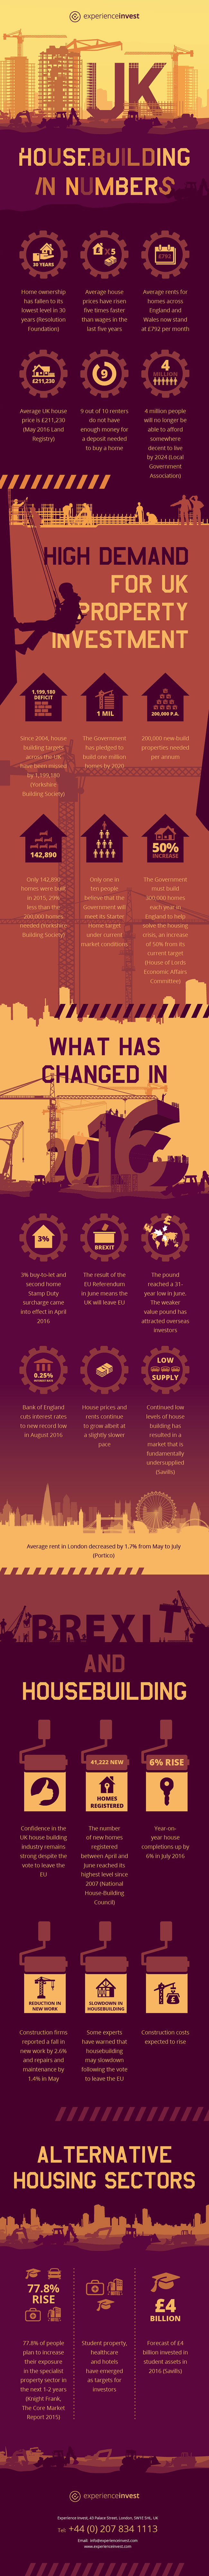 UK House Building in Numbers